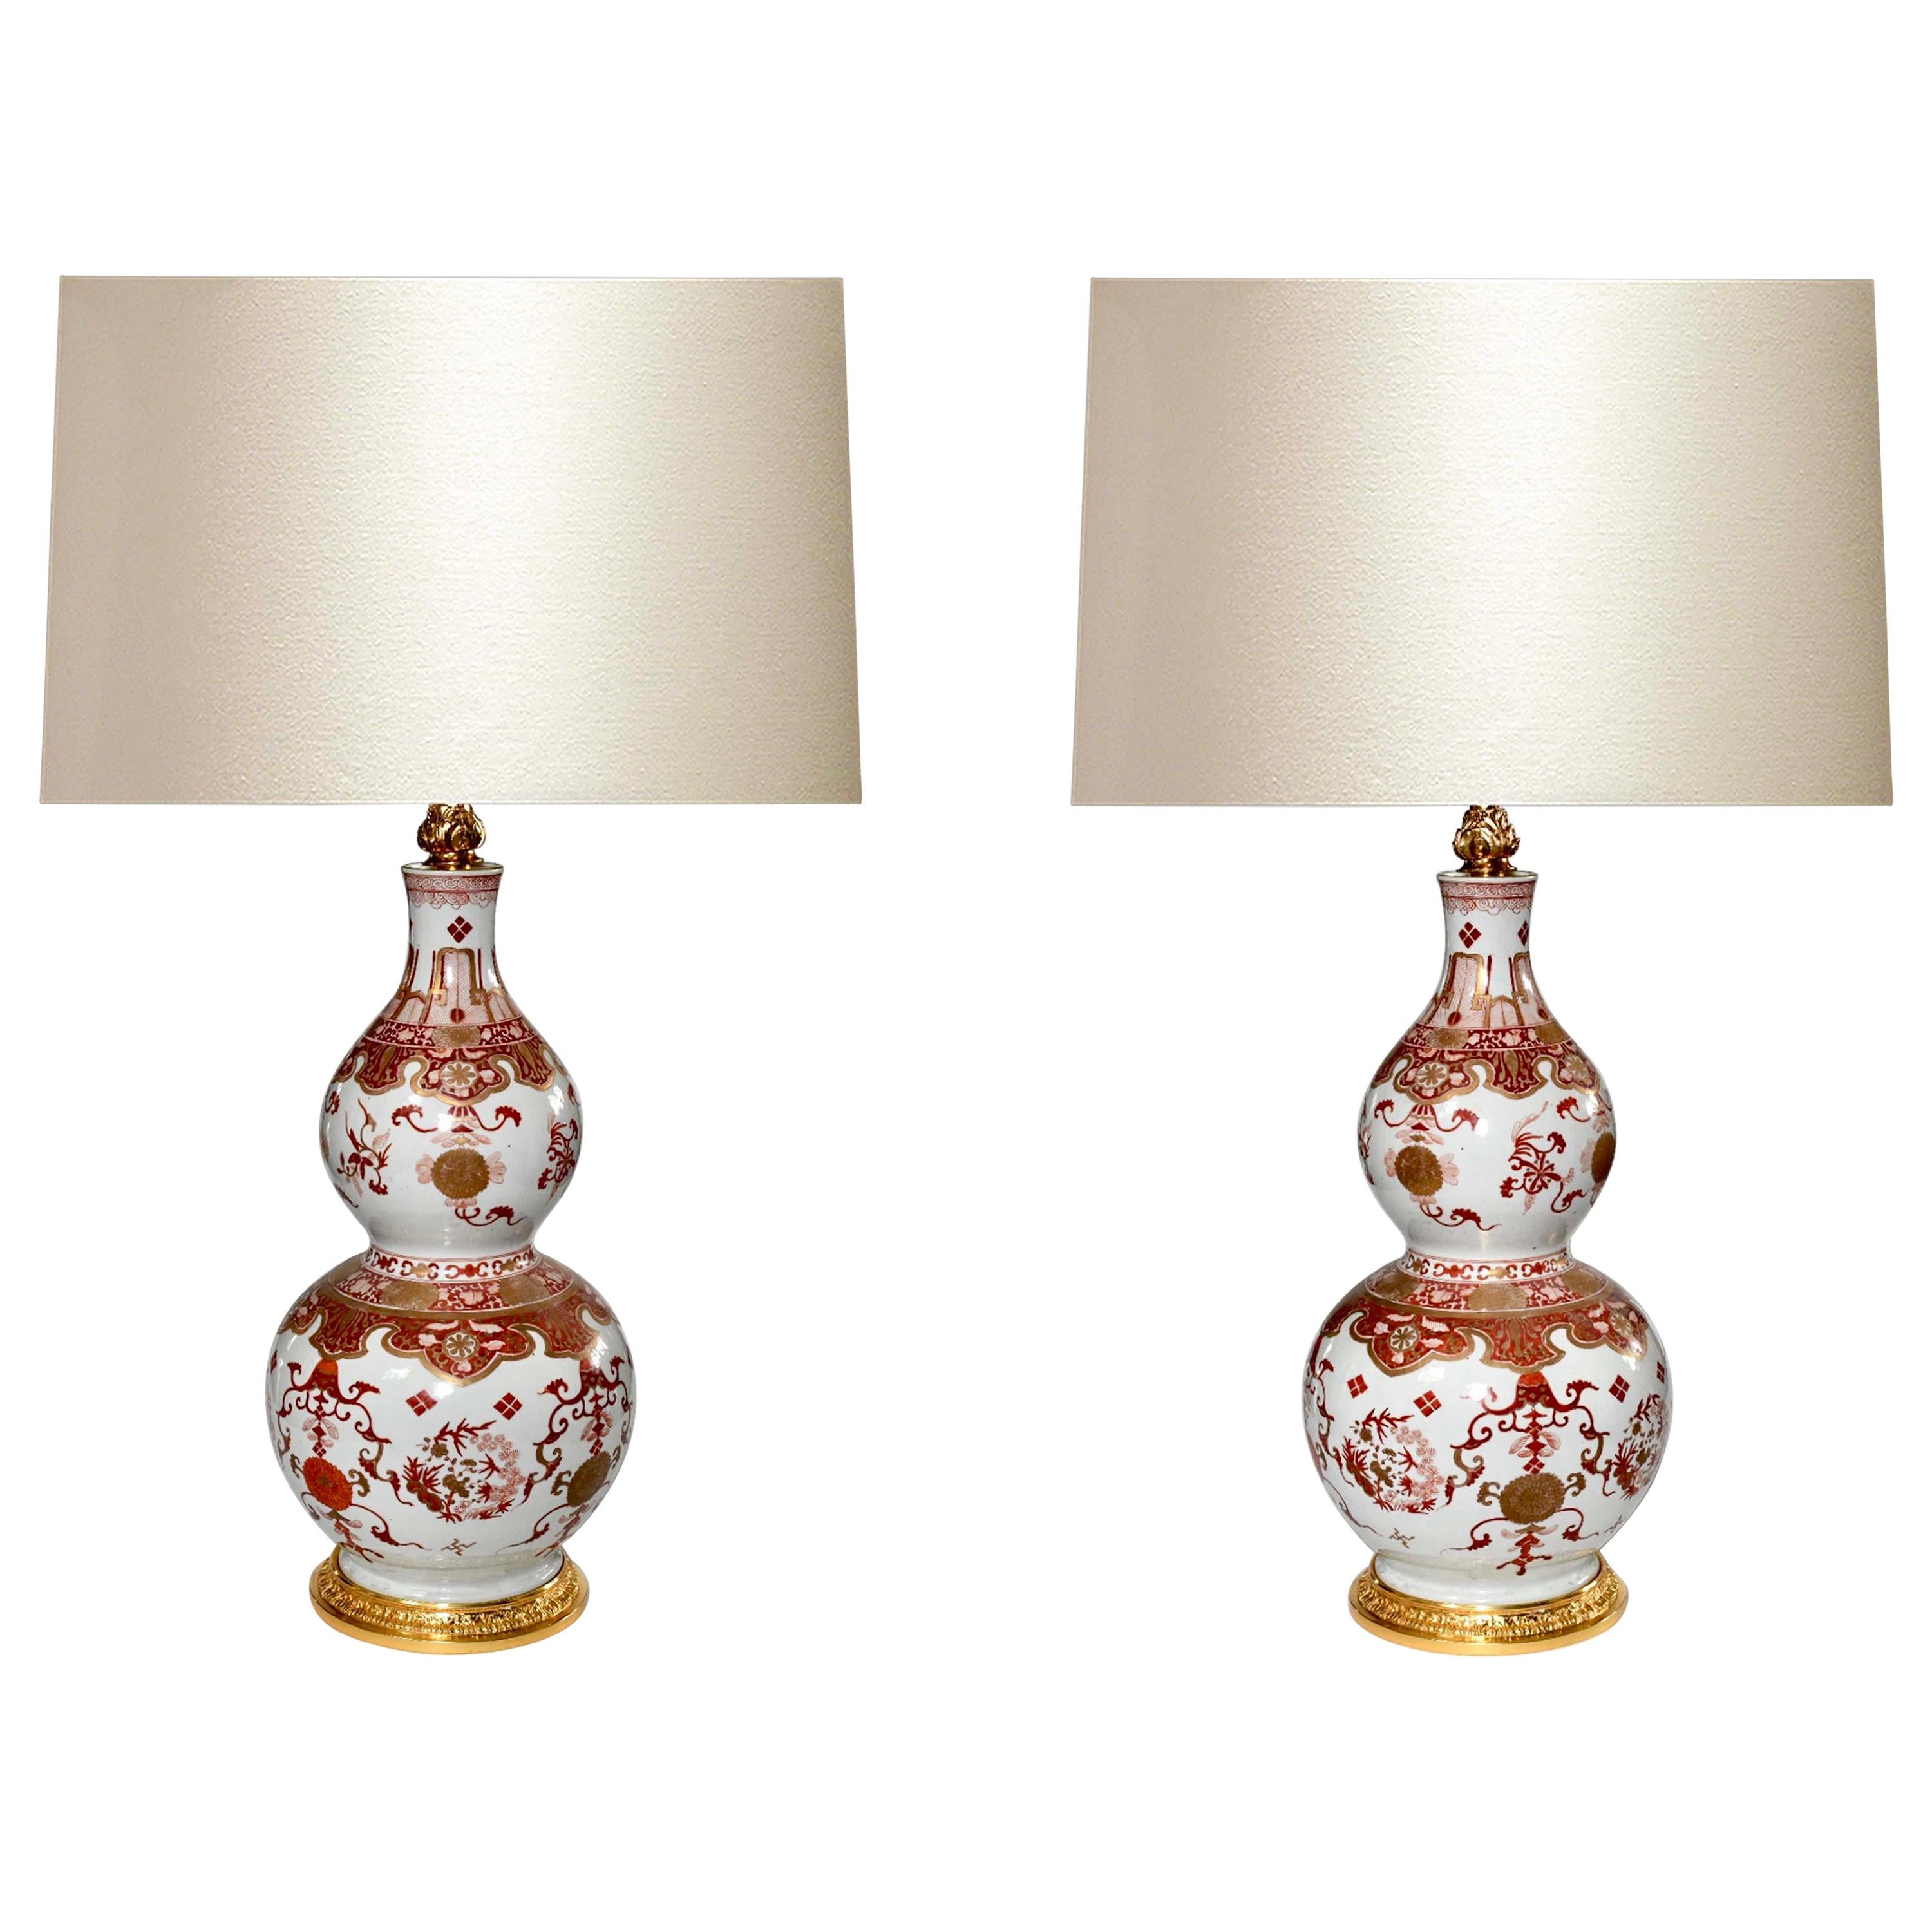 Pair of Famille Rose Porcelain Lamps